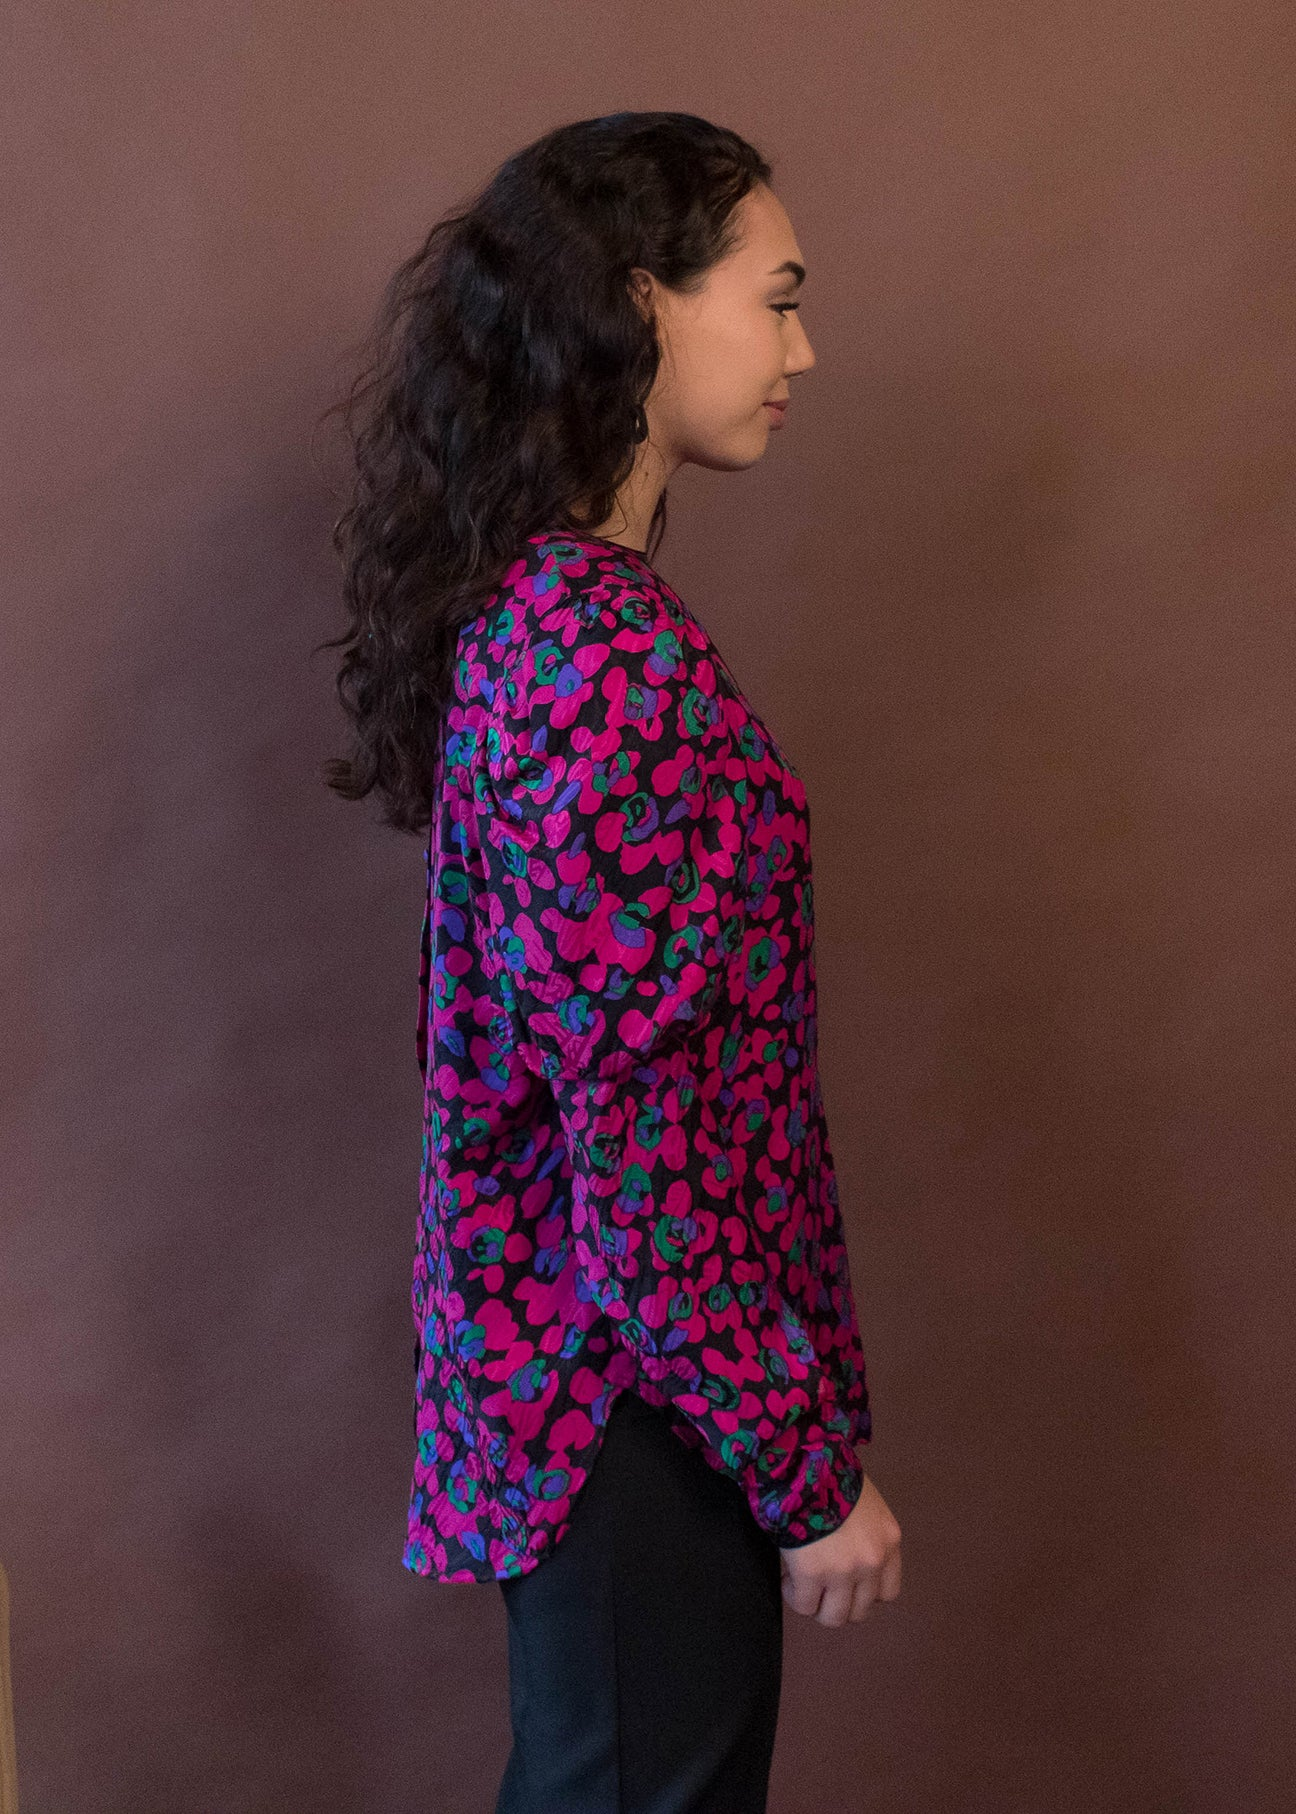 80s Floral Leg-O-Mutton Sleeve Blouse